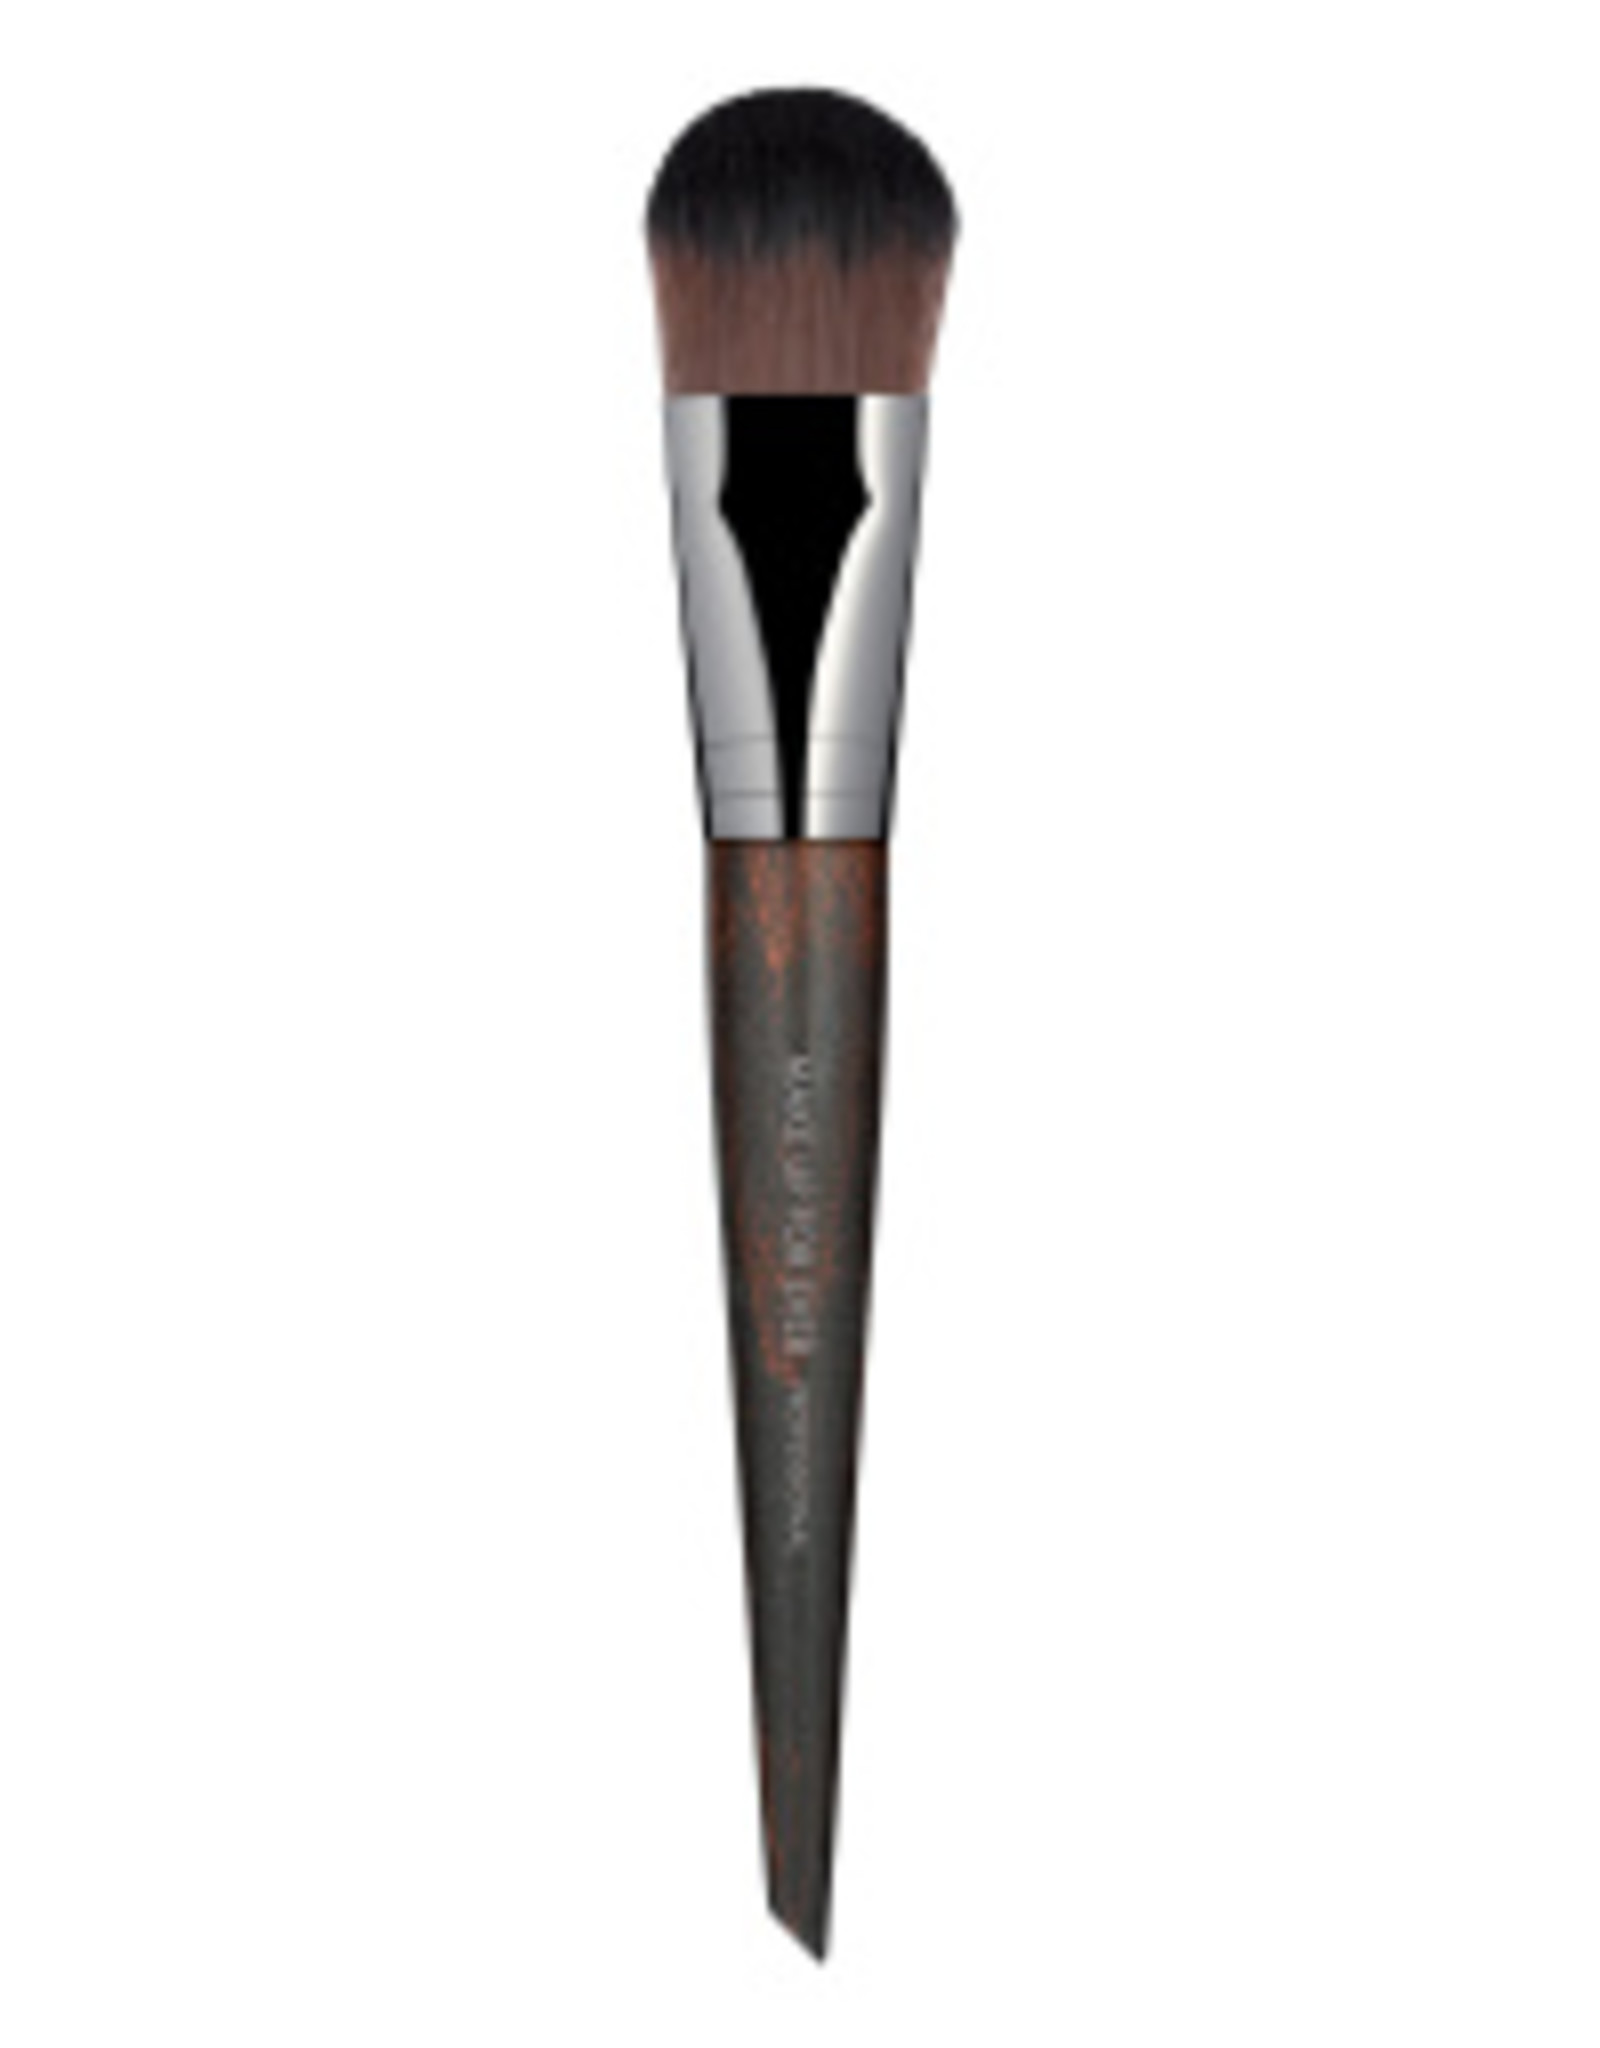 MUFE #106 PINCEAU  FDT - MOYEN / FOUNDATION BRUSH - MEDIUM